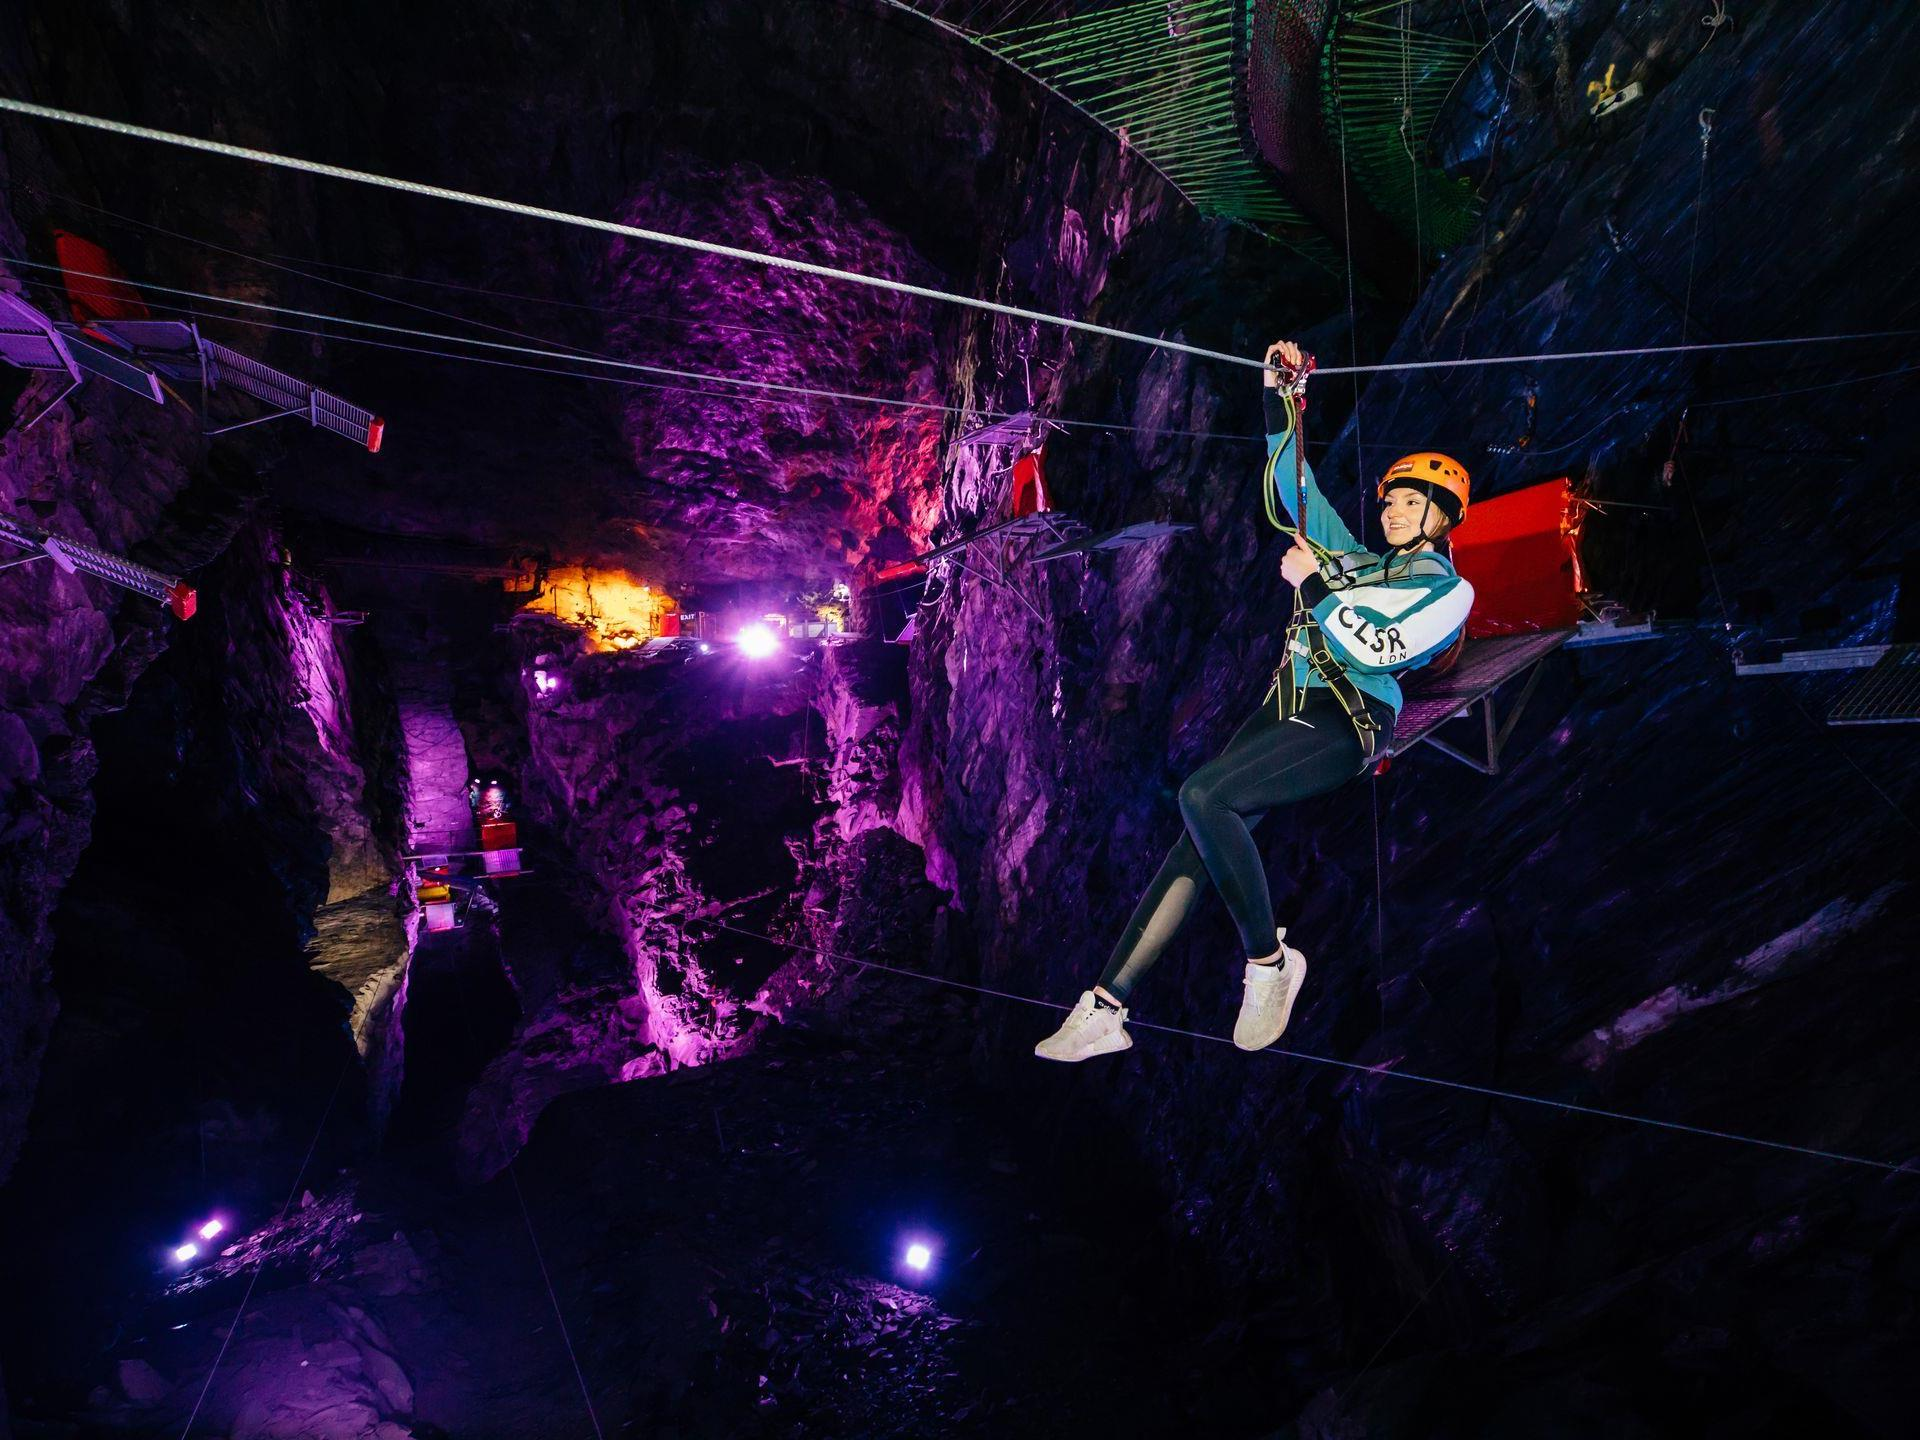 Take flight on 11 zip lines at Zip World Caverns